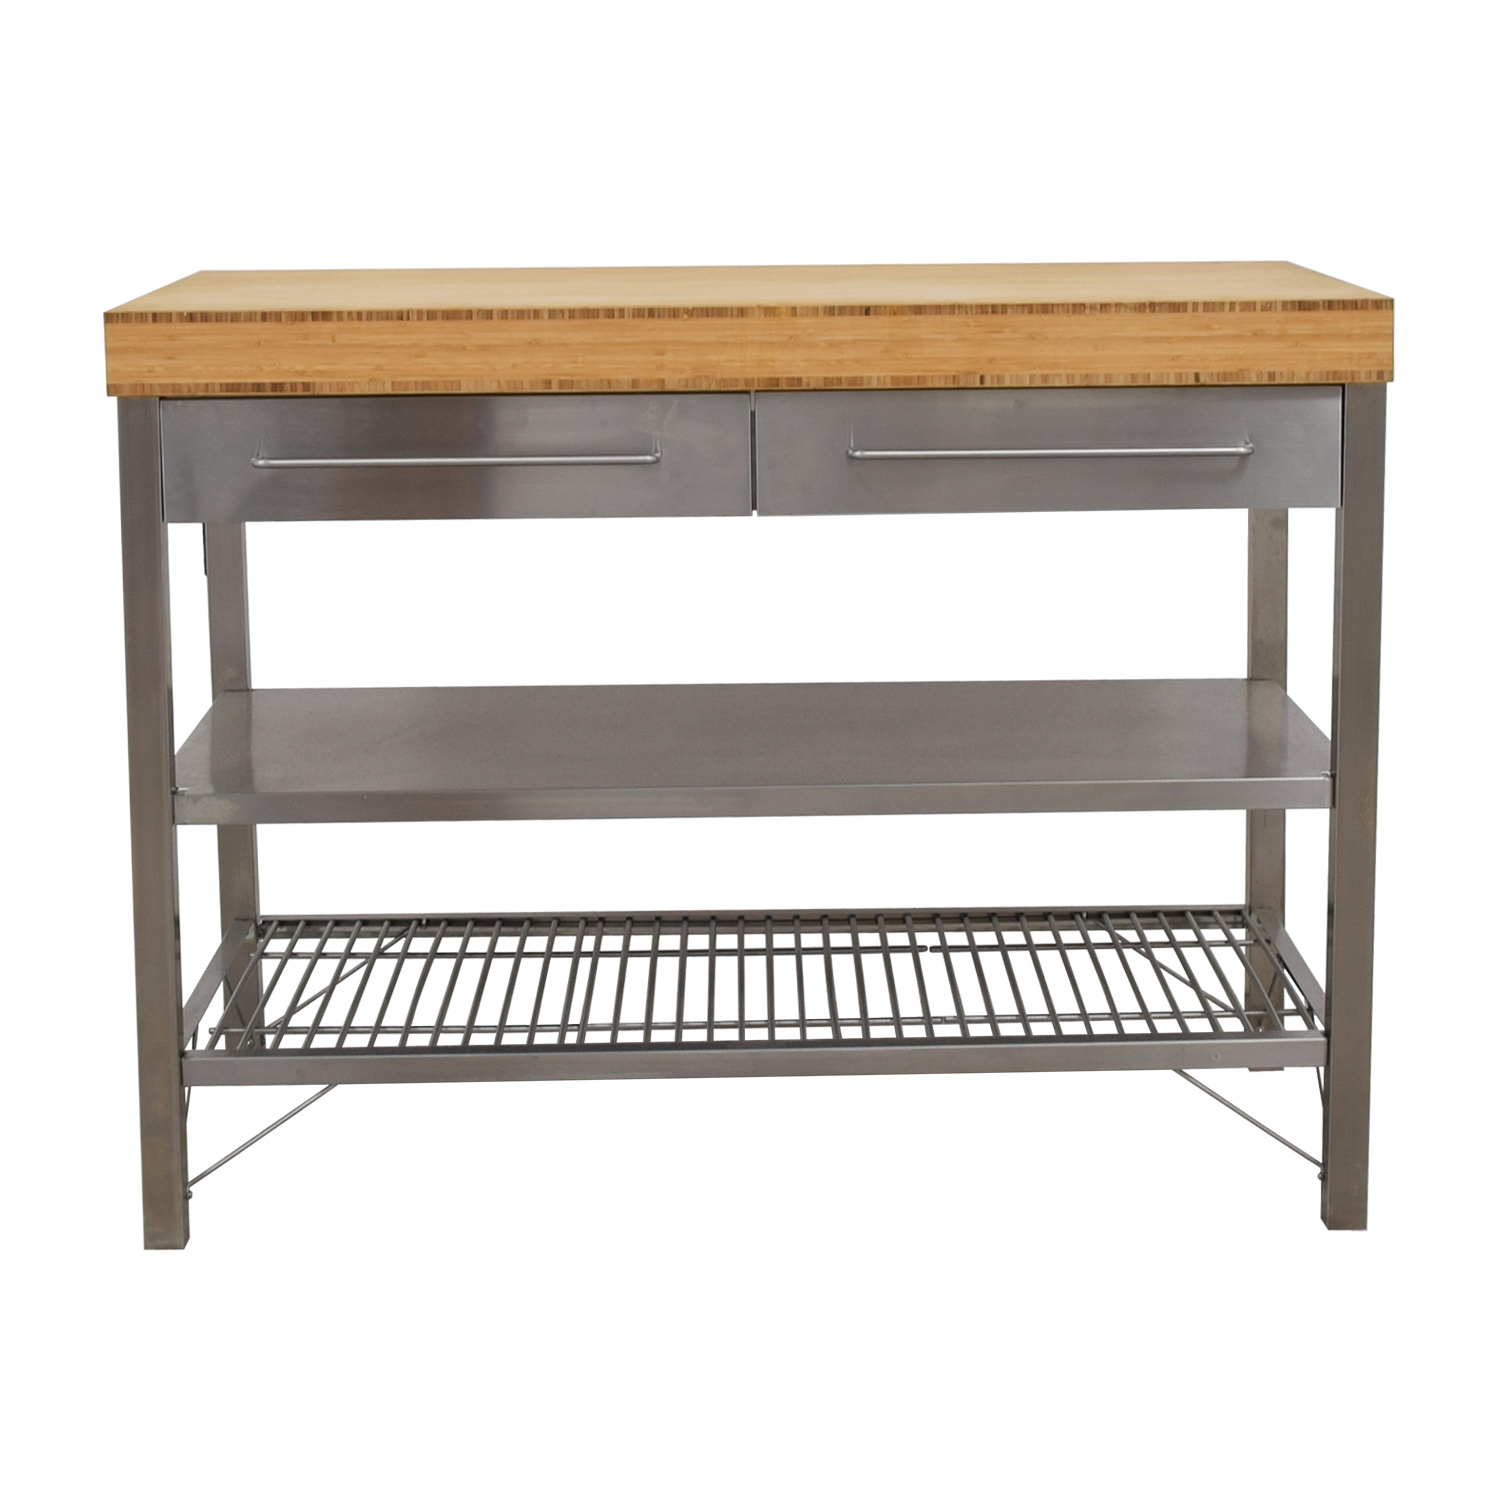 40% OFF - IKEA IKEA Kitchen Work Bench / Tables